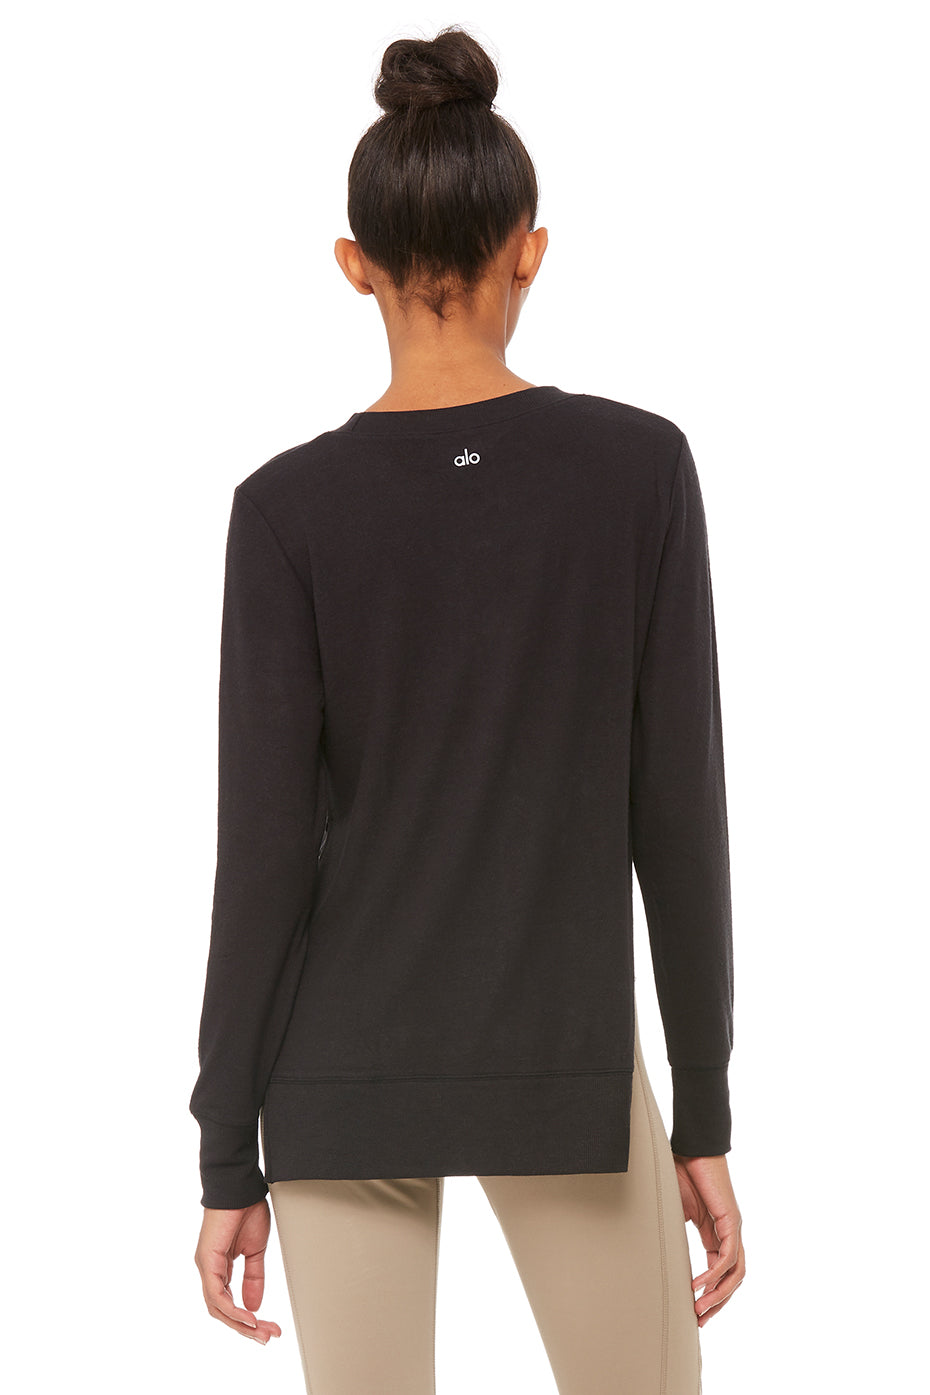 Glimpse Long Sleeve Top - Graphic